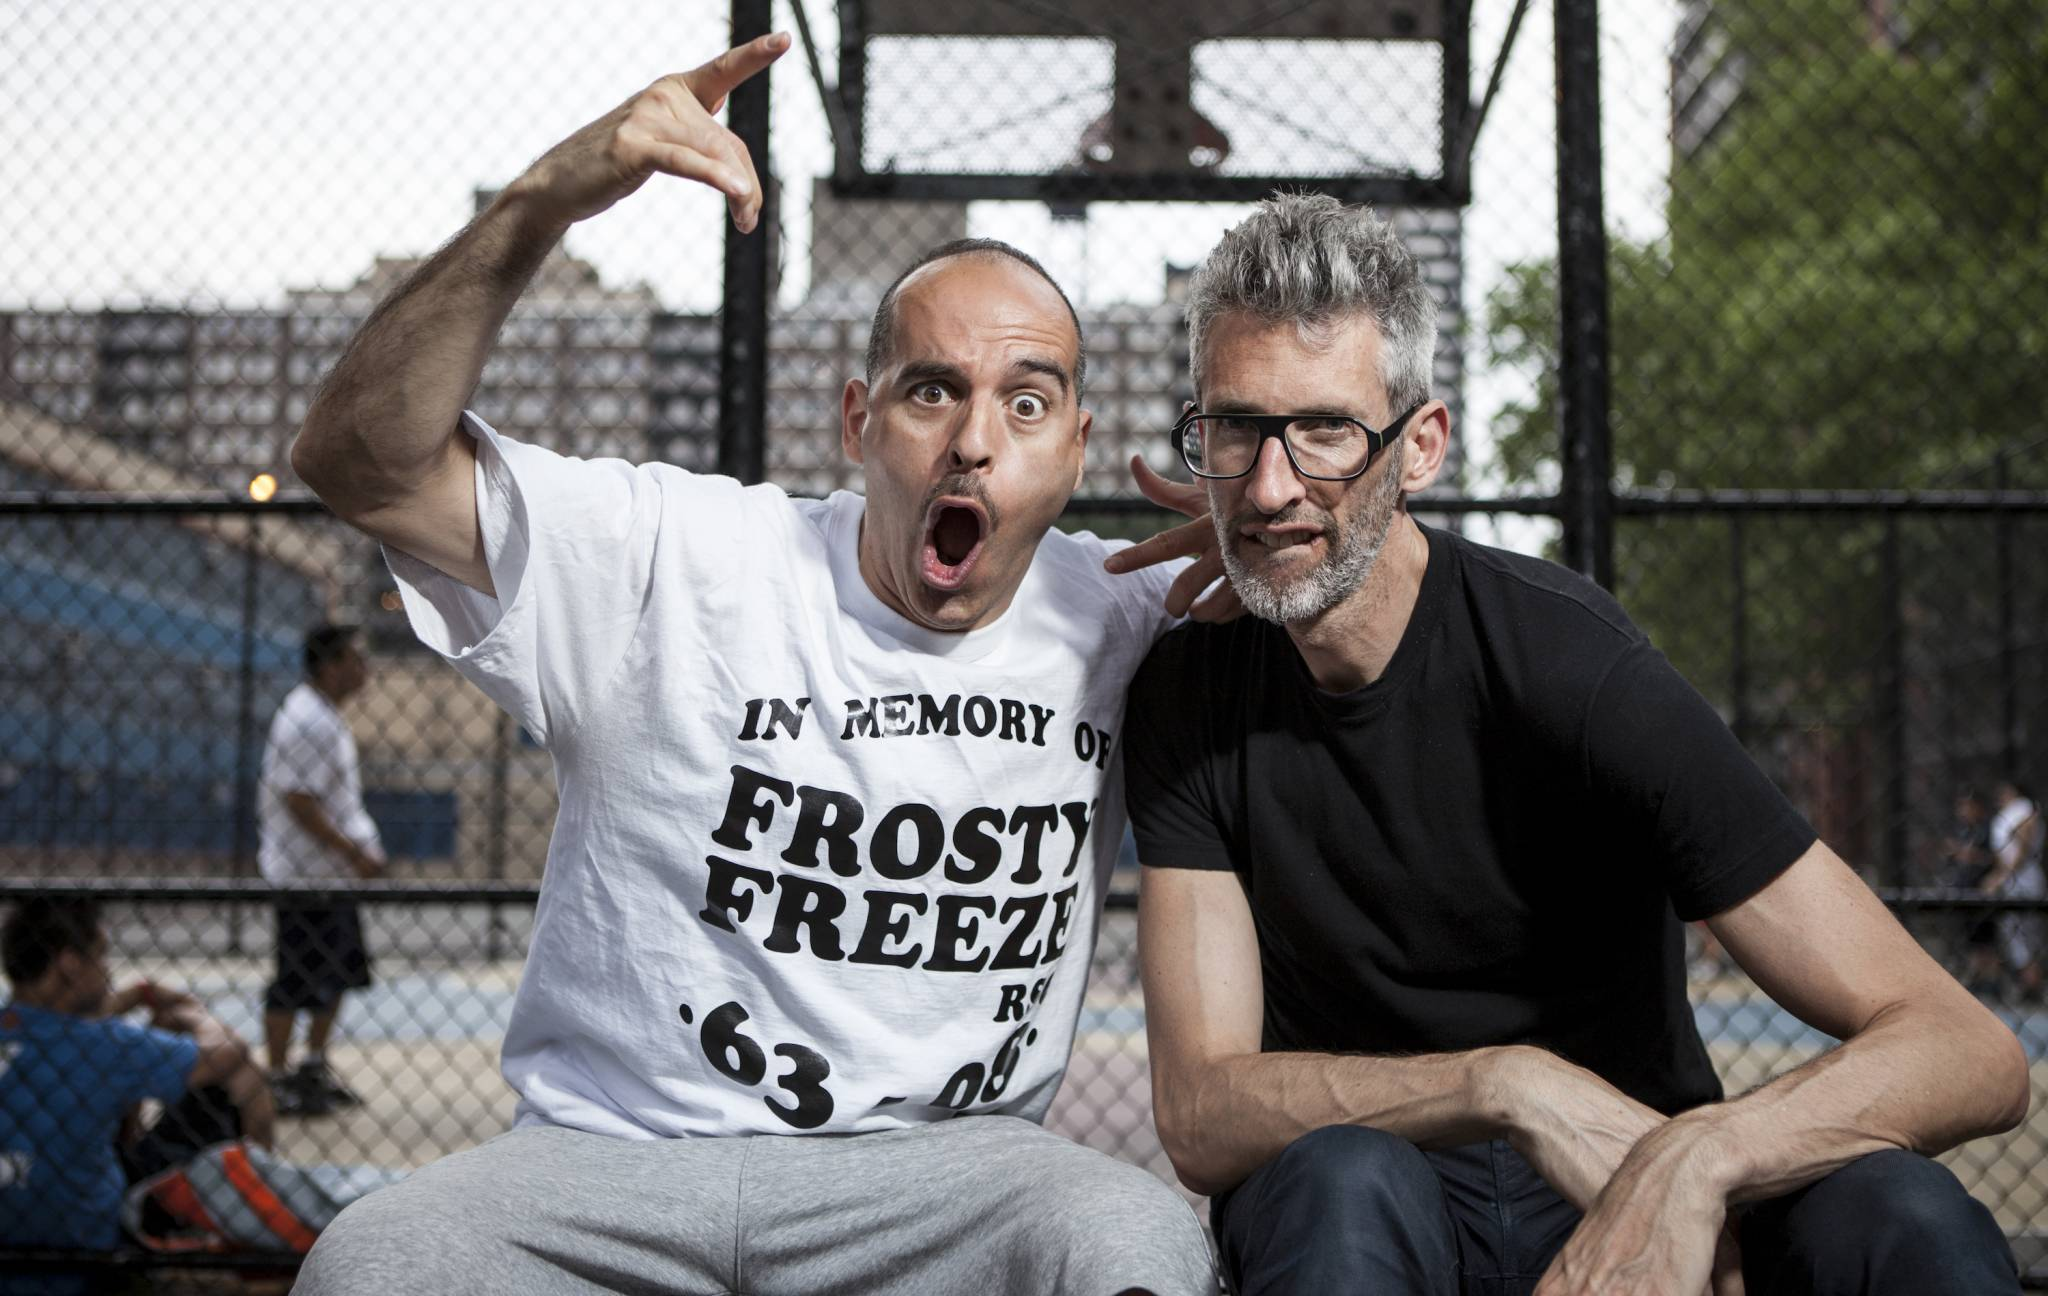 National public media stretch and bobbito new npr culture podcast